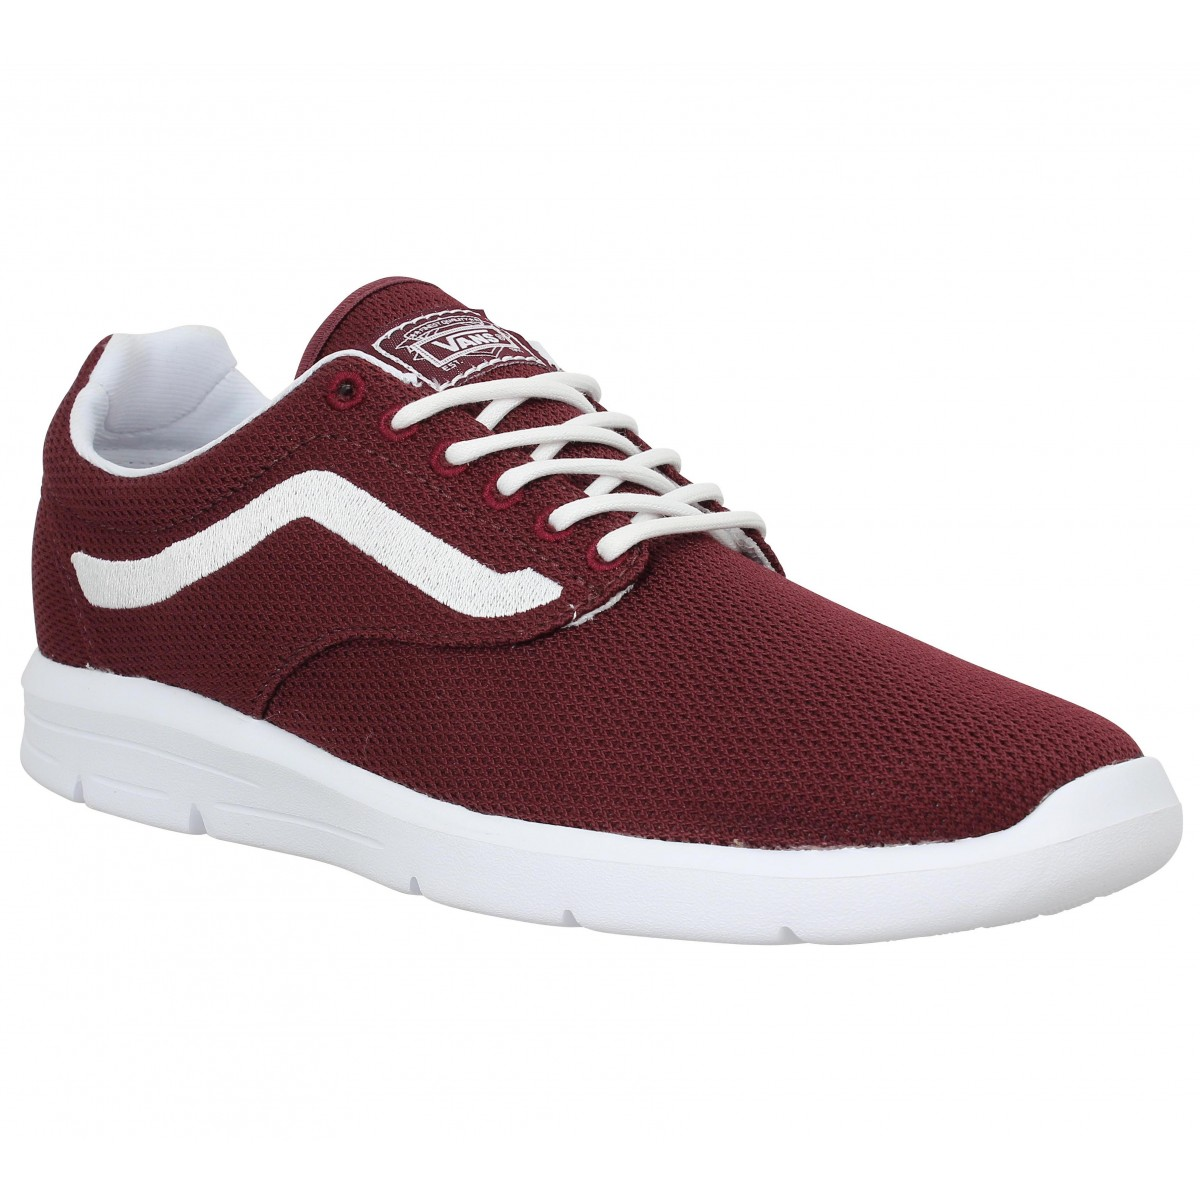 Baskets VANS Iso 1.5 Homme Port Royal